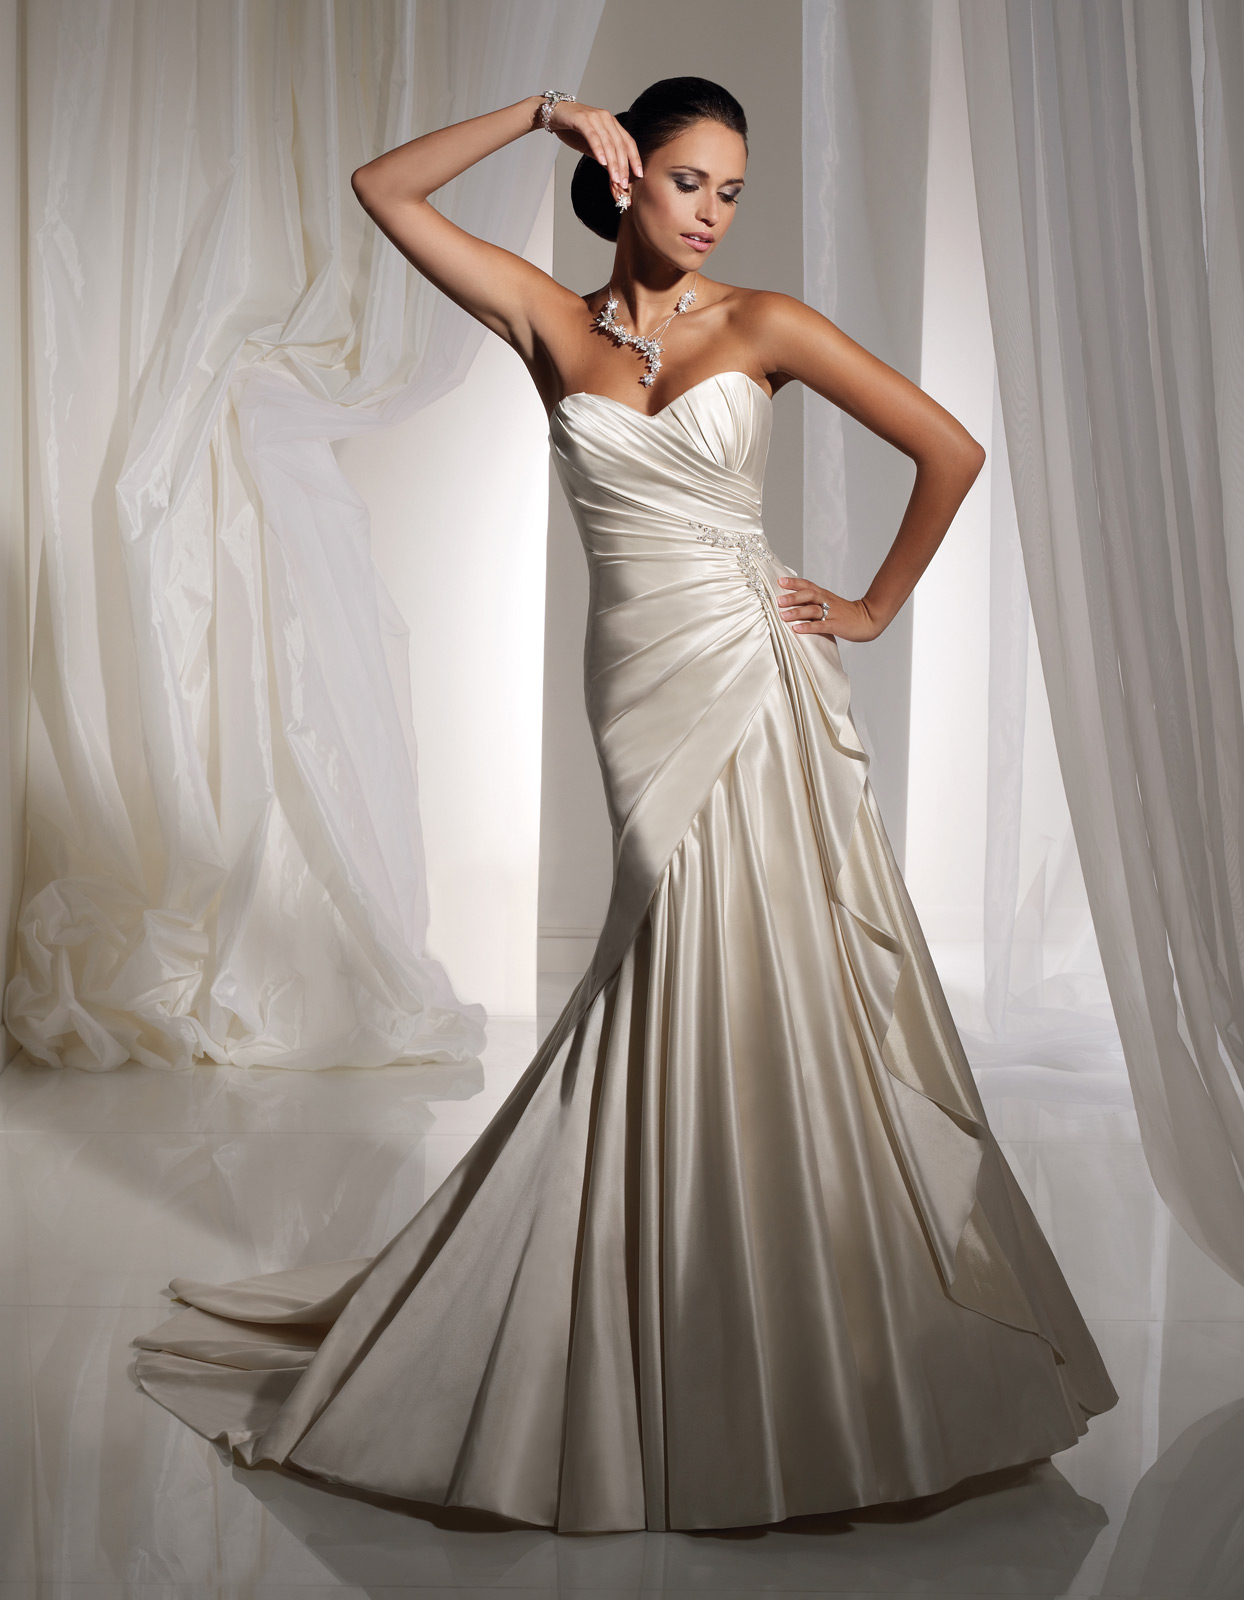 House of Brides Releases its Sophia Tolli Trunk Show Date